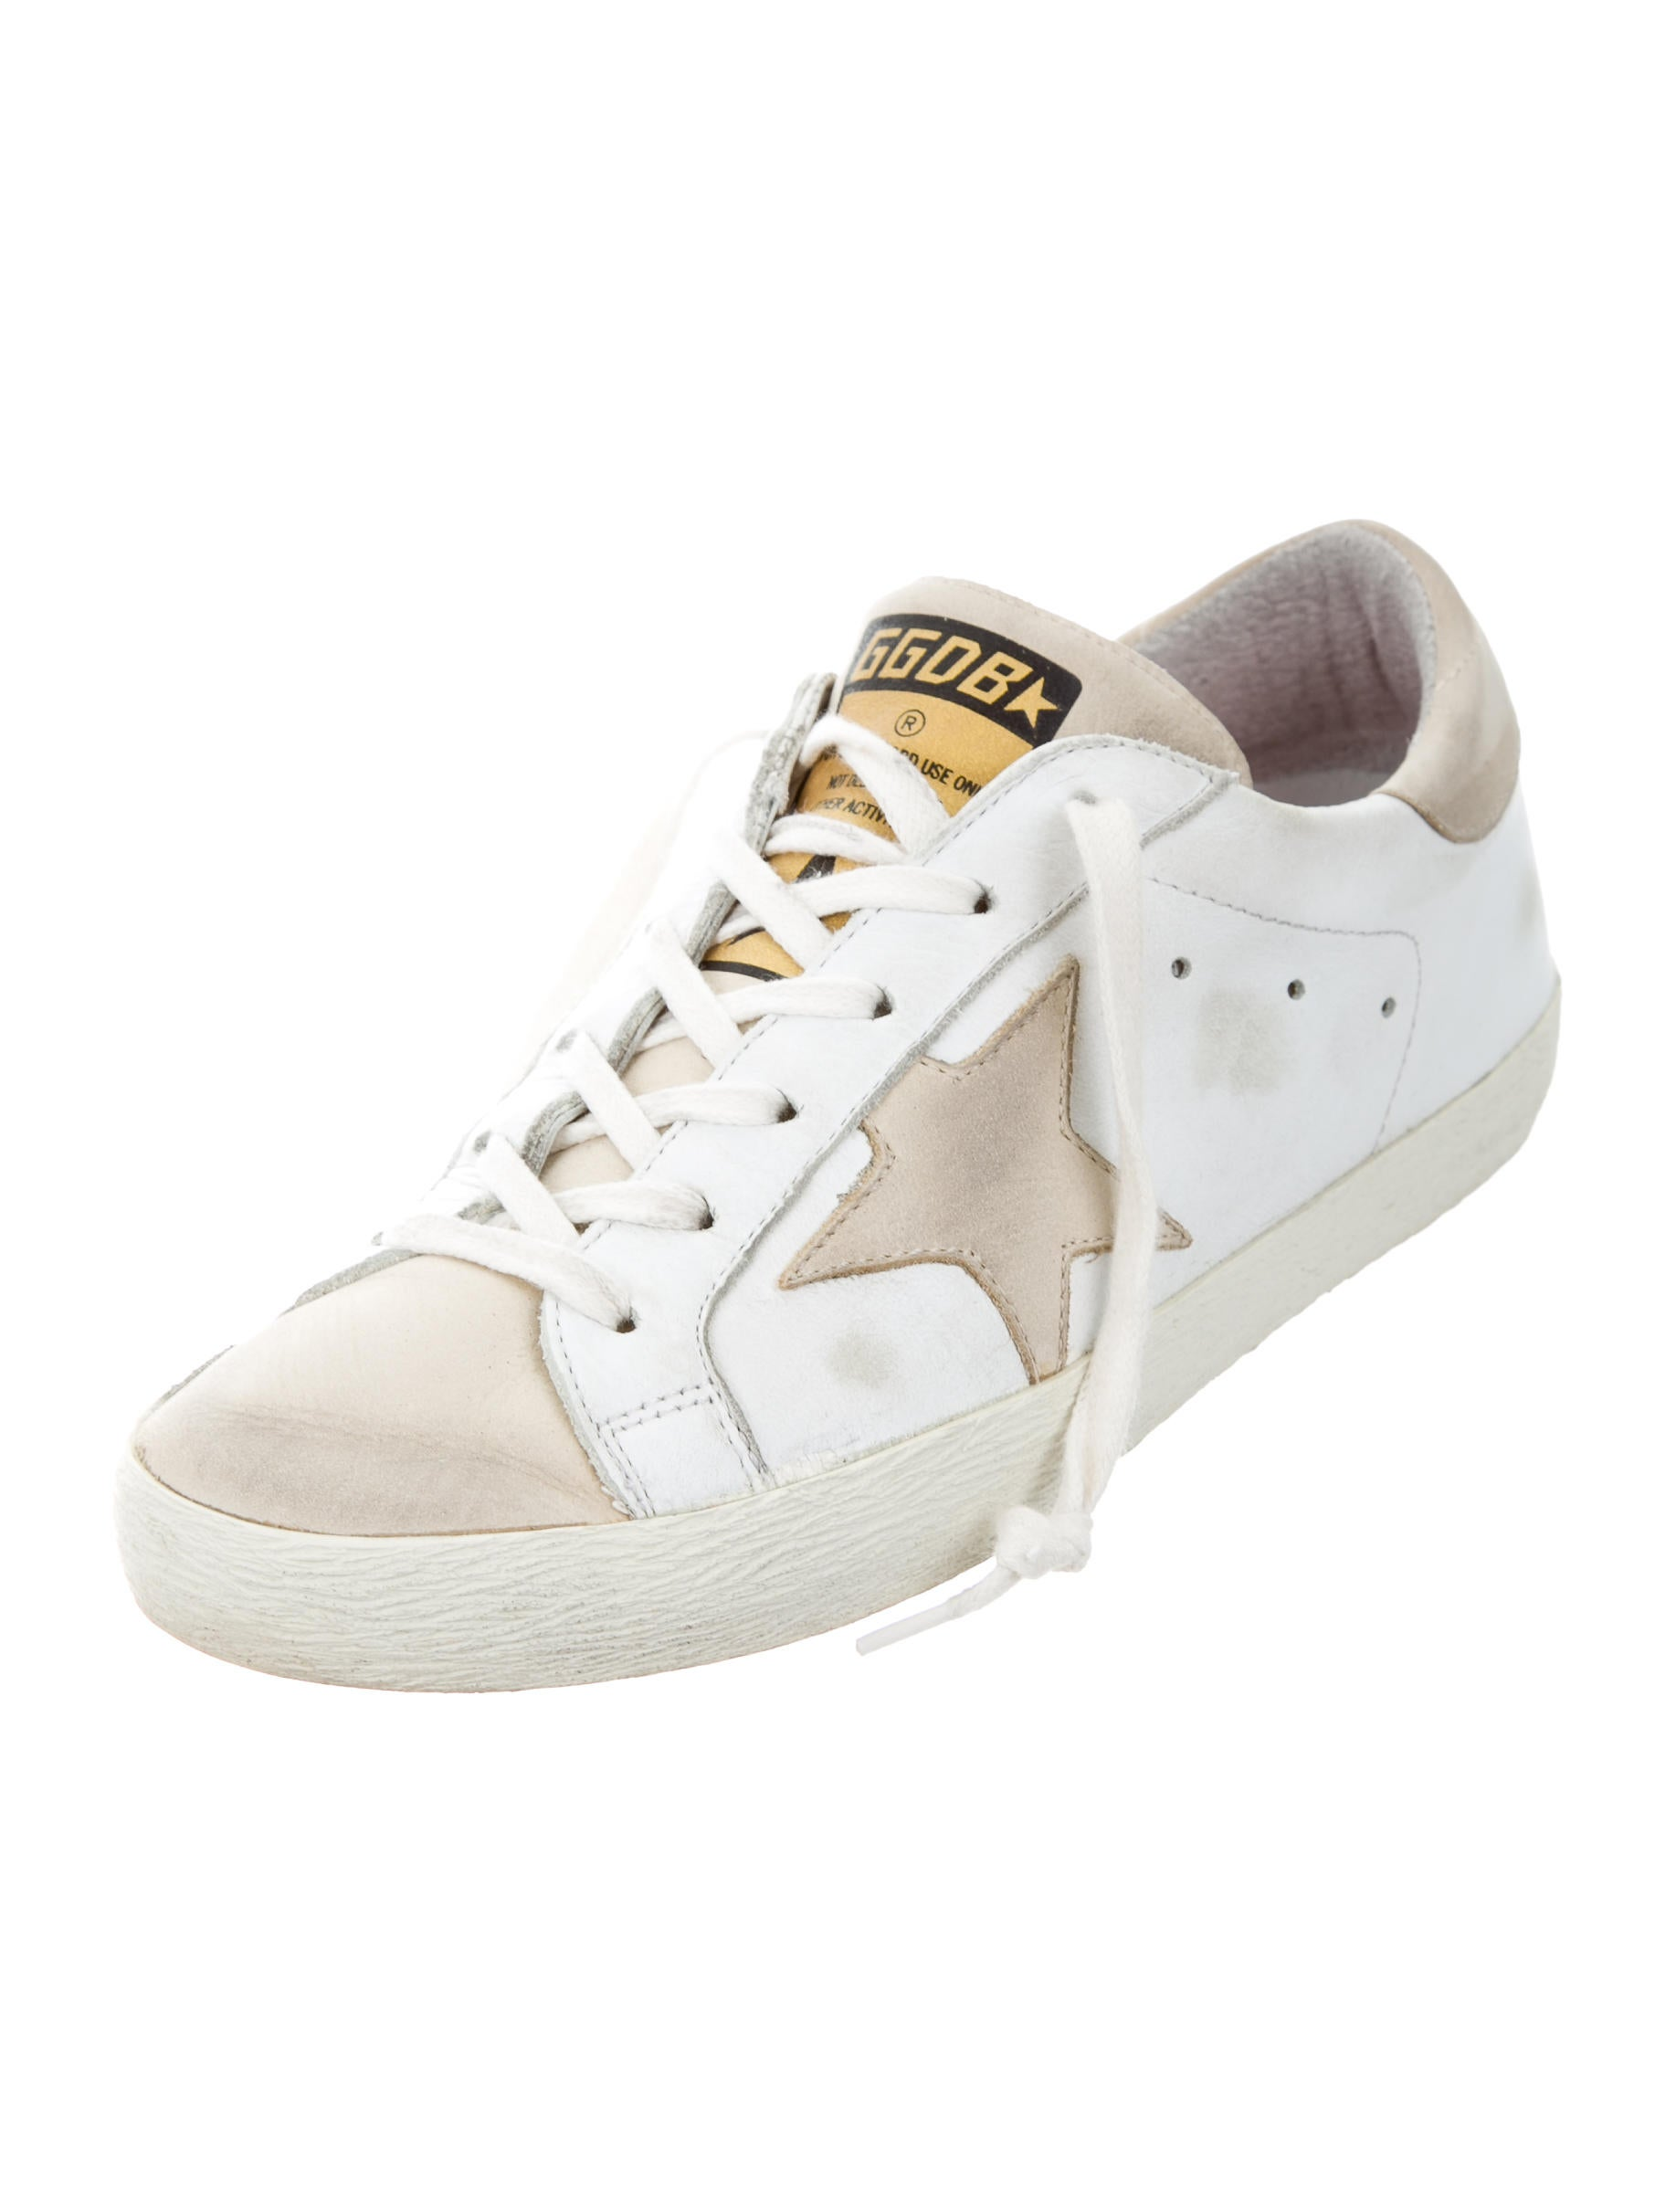 Golden Goose Superstar Distressed Sneakers - Shoes - WG524197 | The RealReal